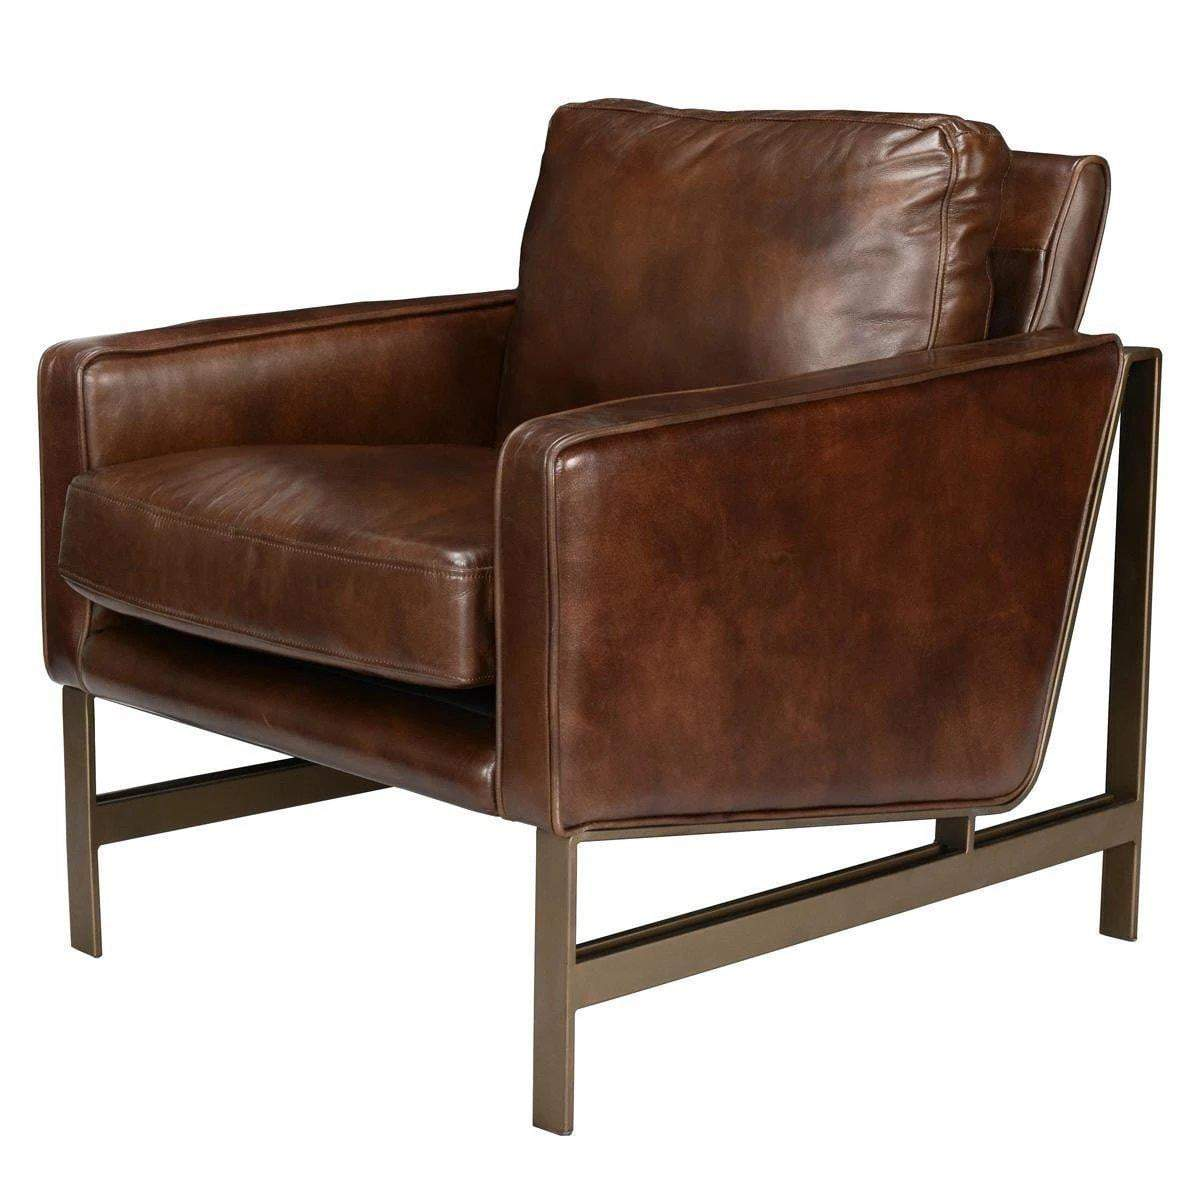 Chazzie Leather Club Chair - Parker Gwen